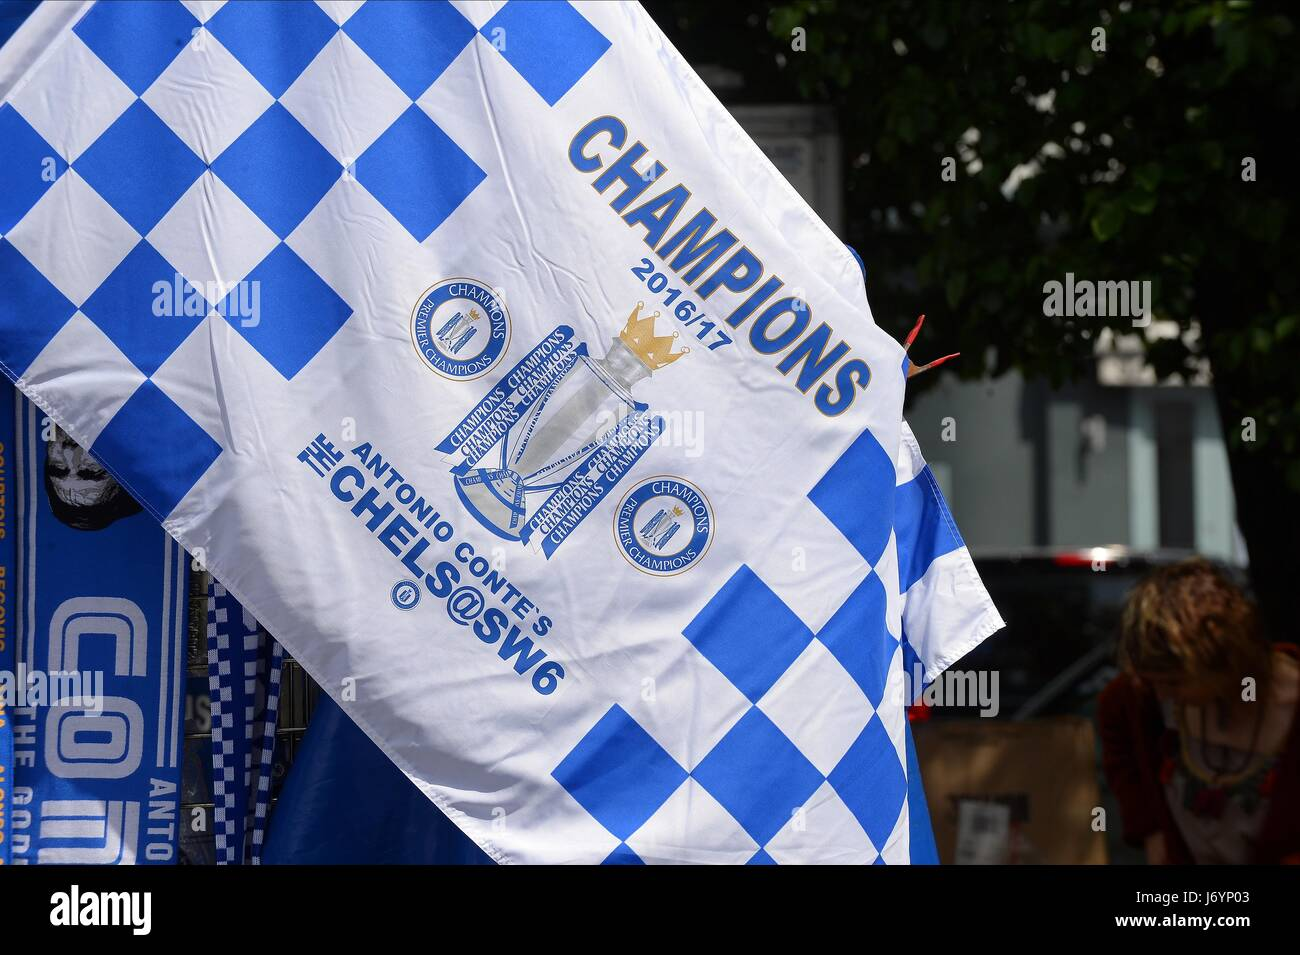 SCARFS AND FLAGS FOR SALE OUTS CHELSEA V SUNDERLAND STAMFORD BRIDGE STADIUM LONDON ENGLAND 21 May 2017 - Stock Image